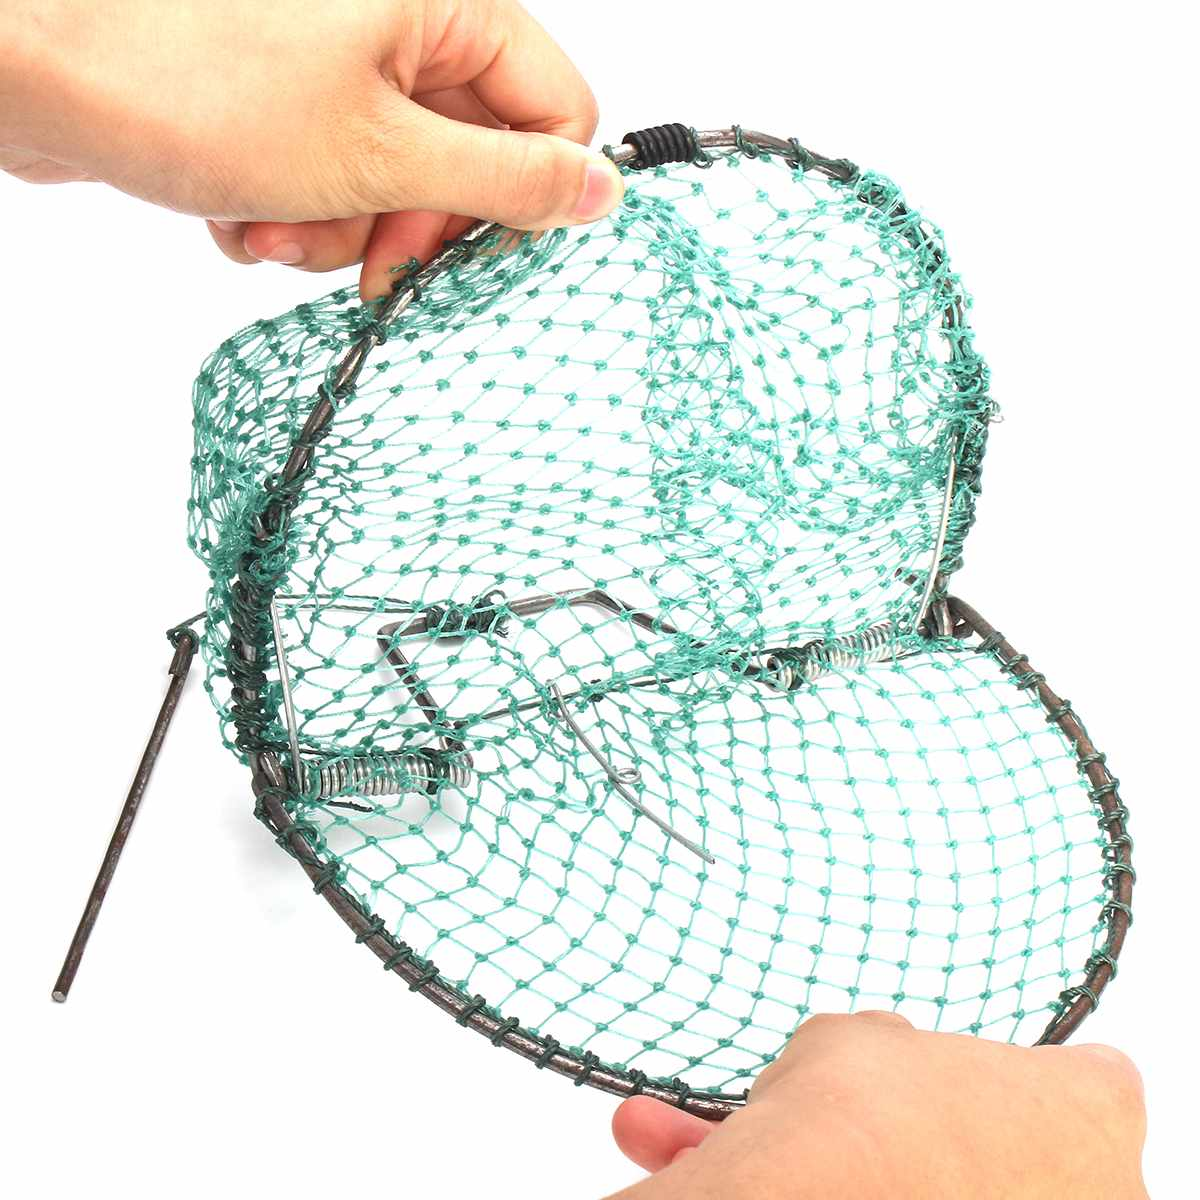 Heavy Duty Bird Net Effective Humane Live Trap Hunting Sensitive Quail Humane Trapping Hunting 20cm Garden Supplies Pest Control